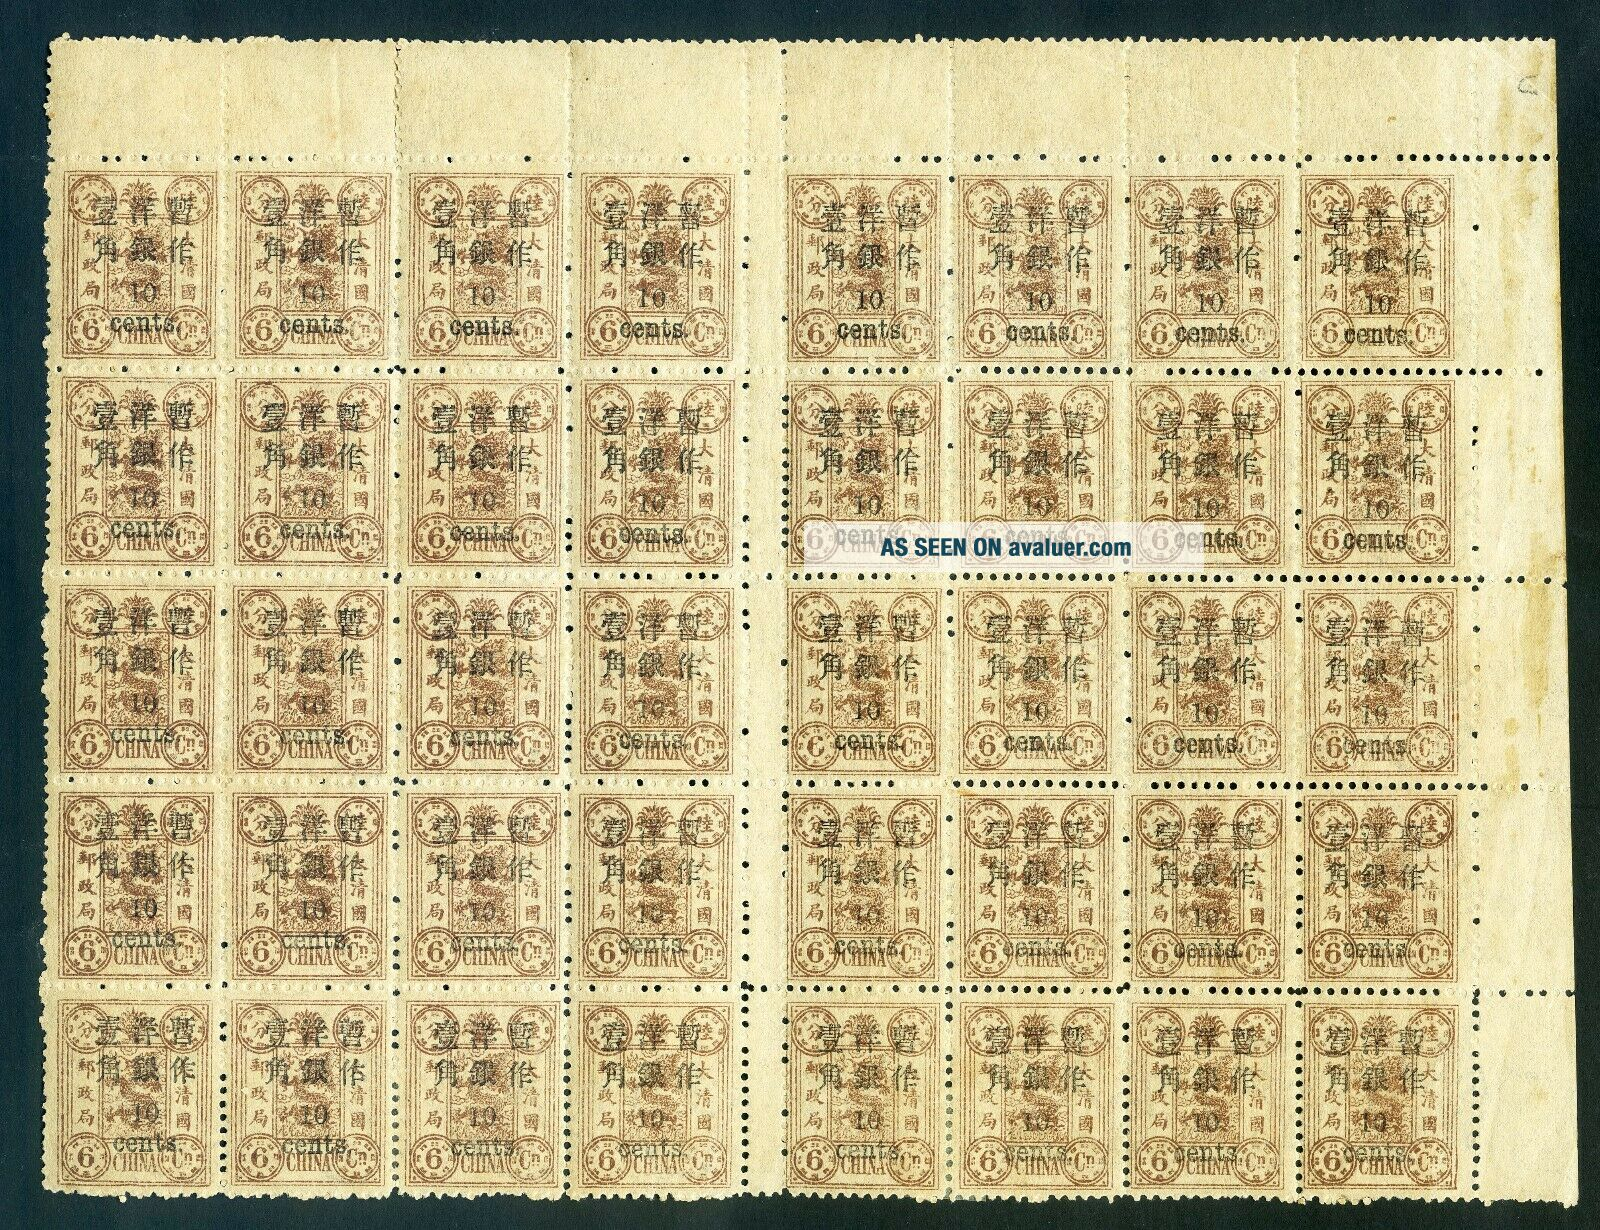 1897 Small figures surch dowager 10cts on 8cds sheet of 40 Chan 43 RARE